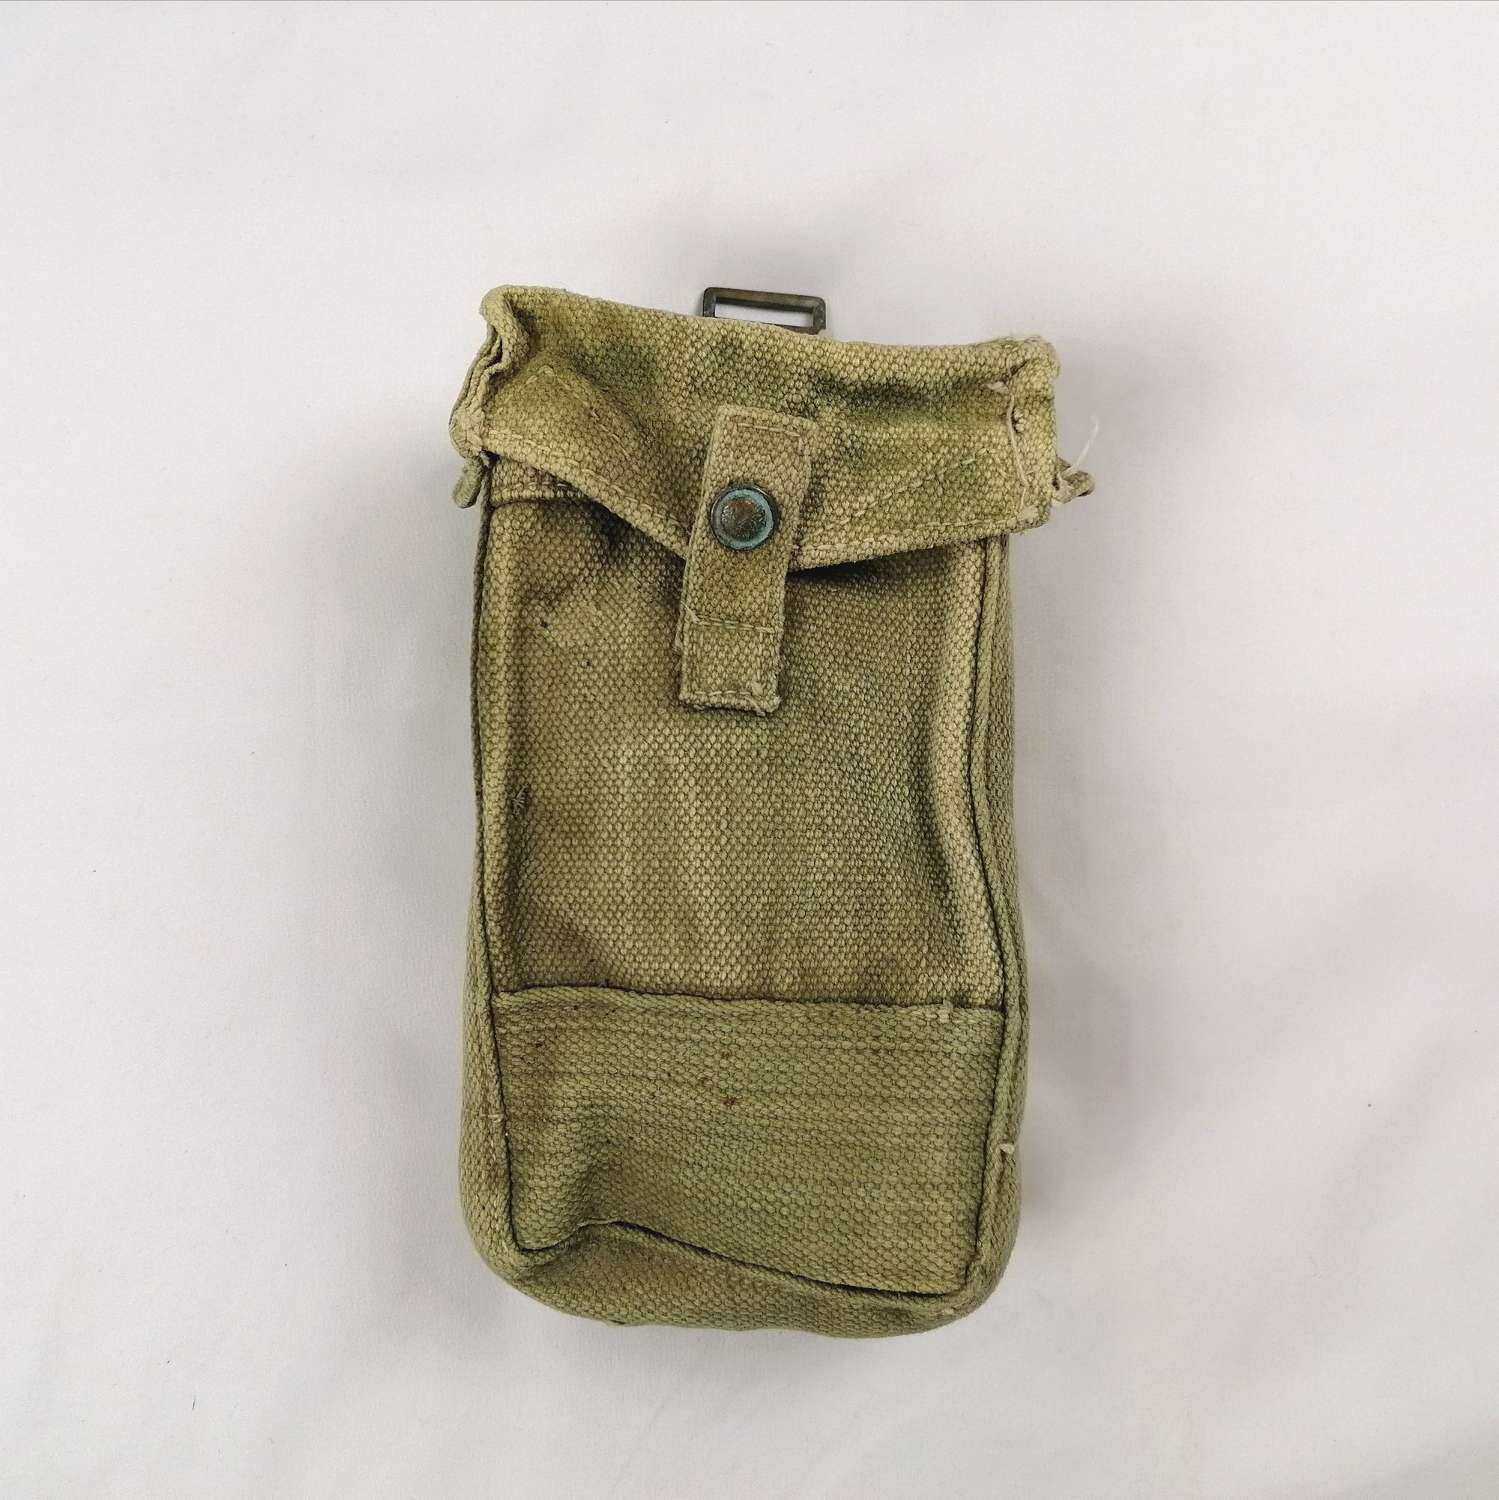 1945 Indian Basic Ammunition Pouch 1937 Pattern